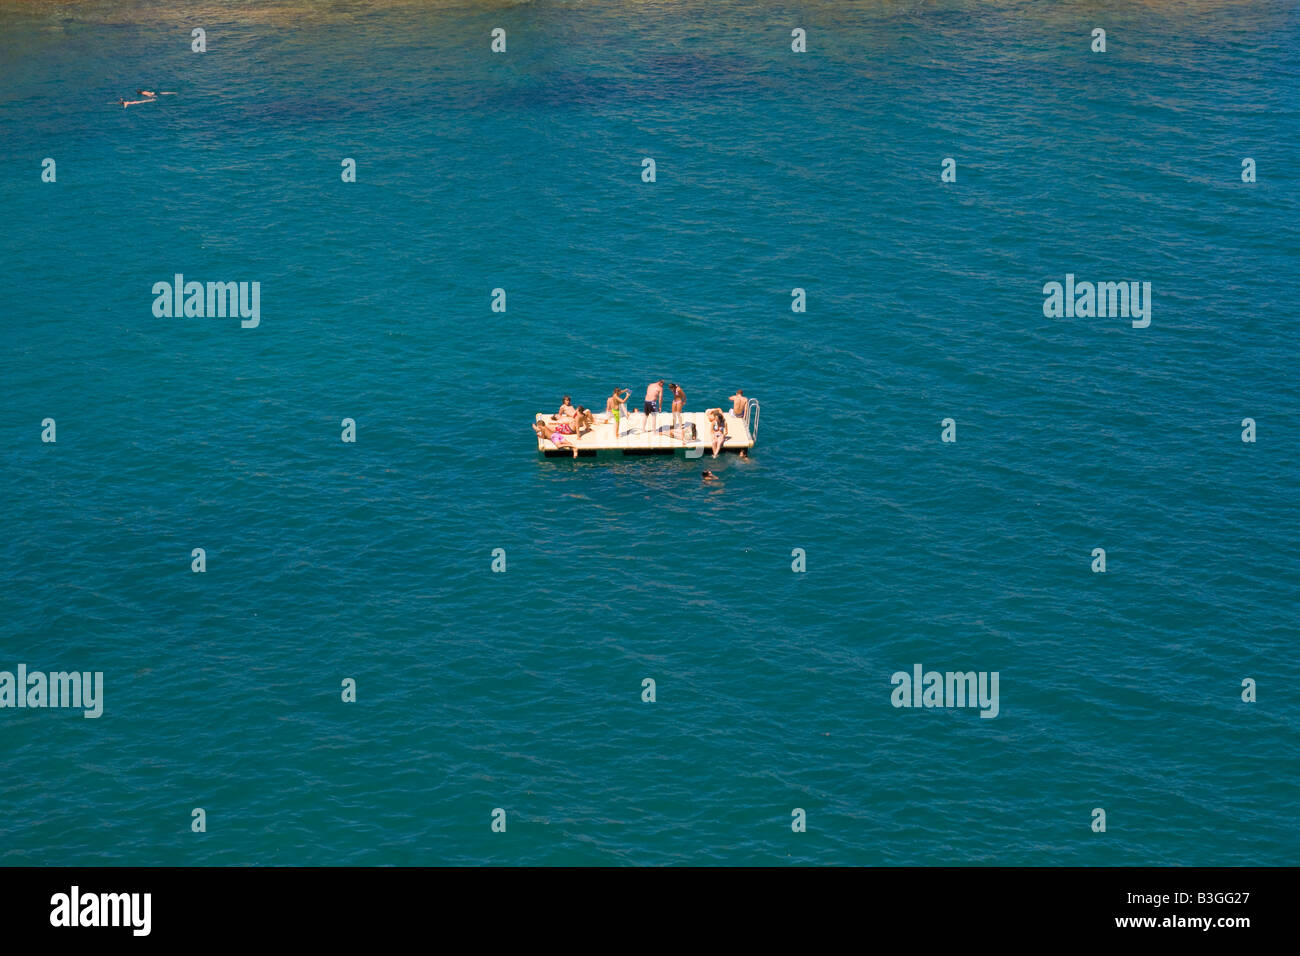 A platform for swimmers in the bay of Banyuls sur Mer in Southern France - Stock Image